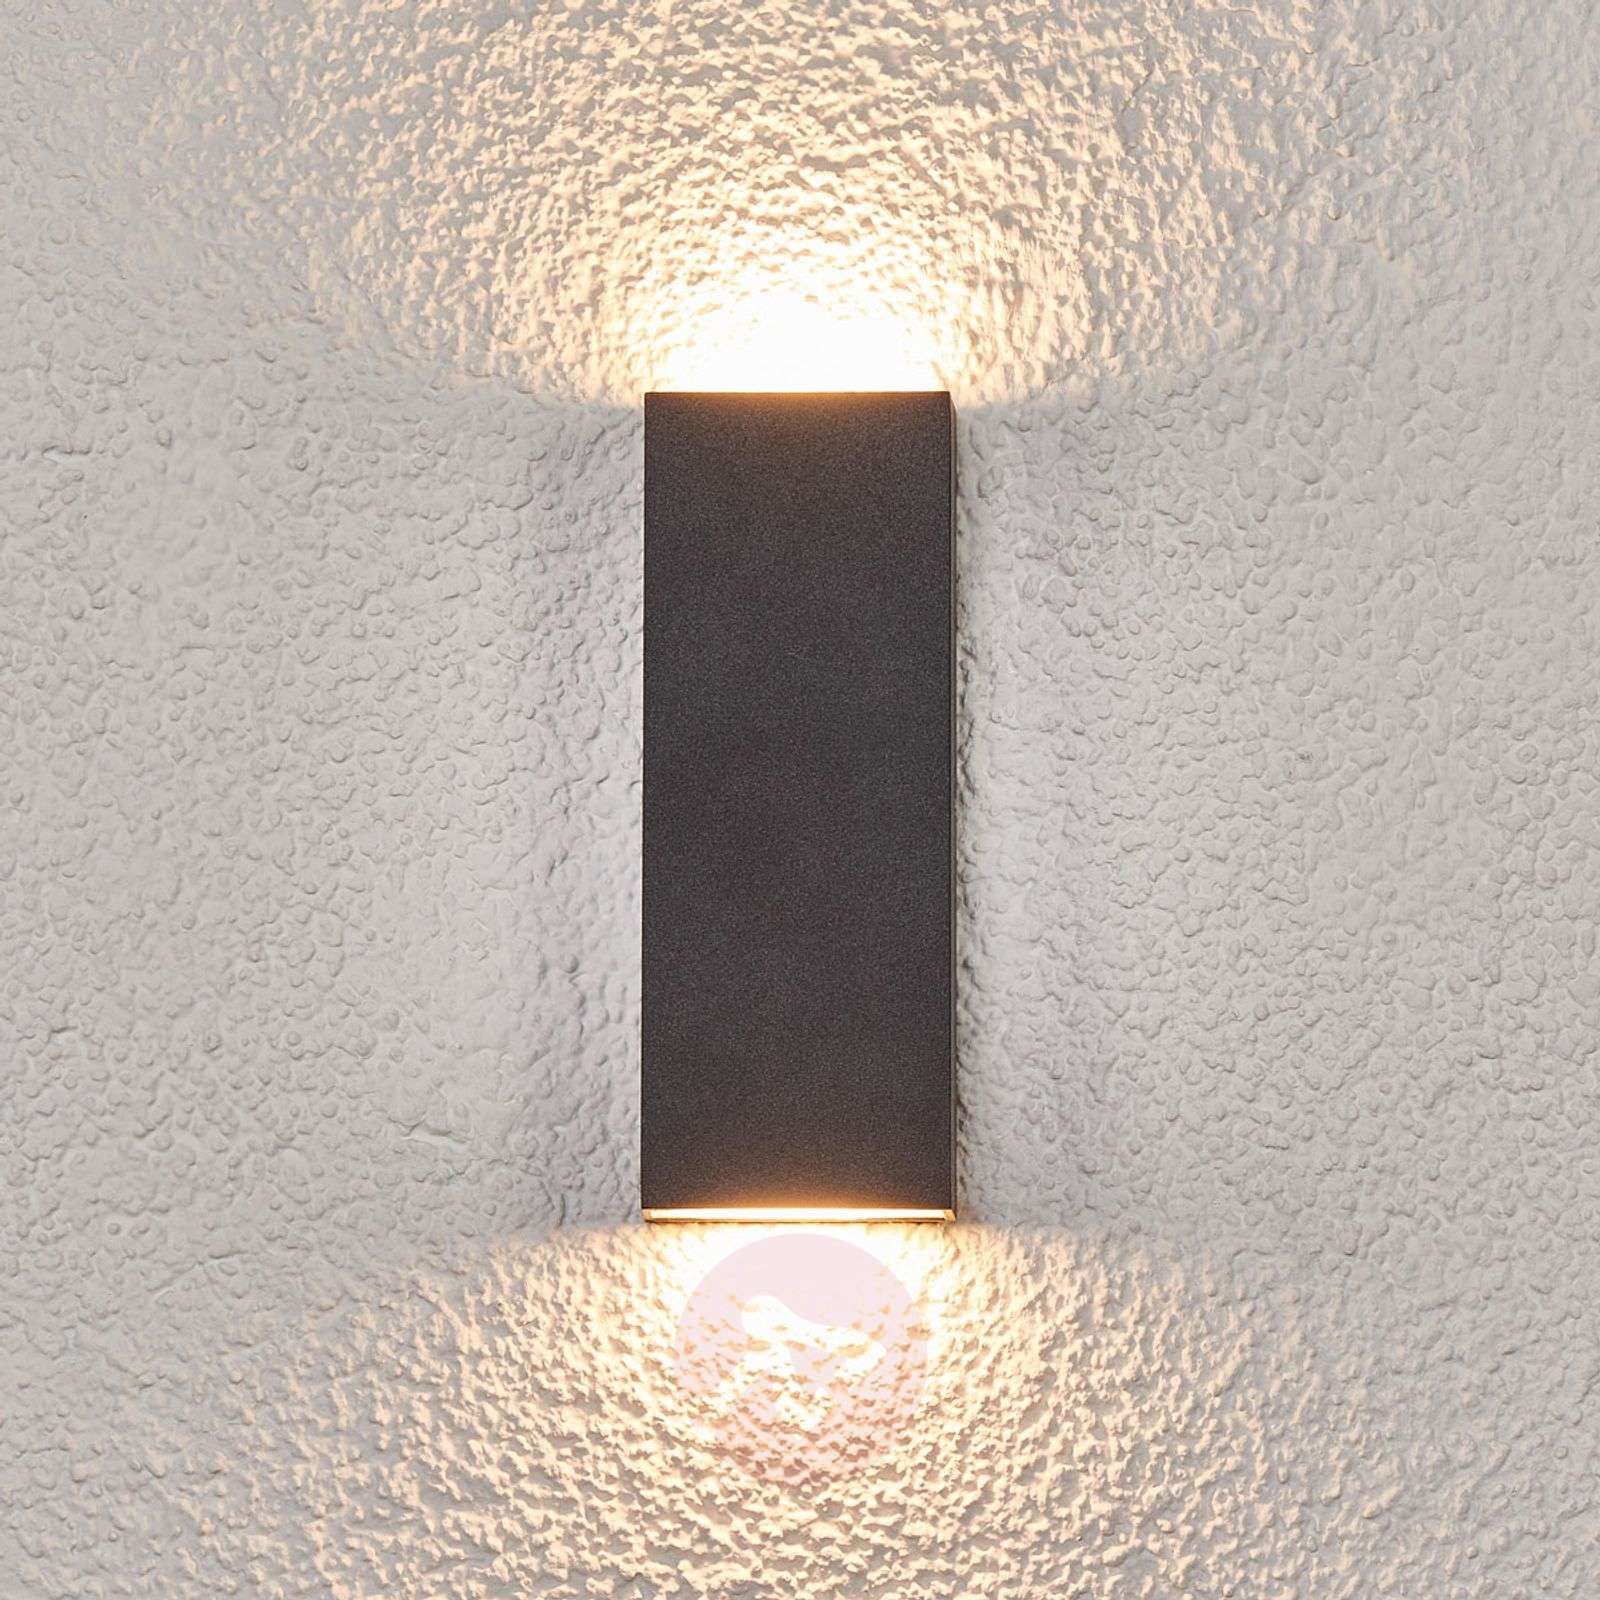 Flat Led Outdoor Wall Lamp Corda 9969040 02